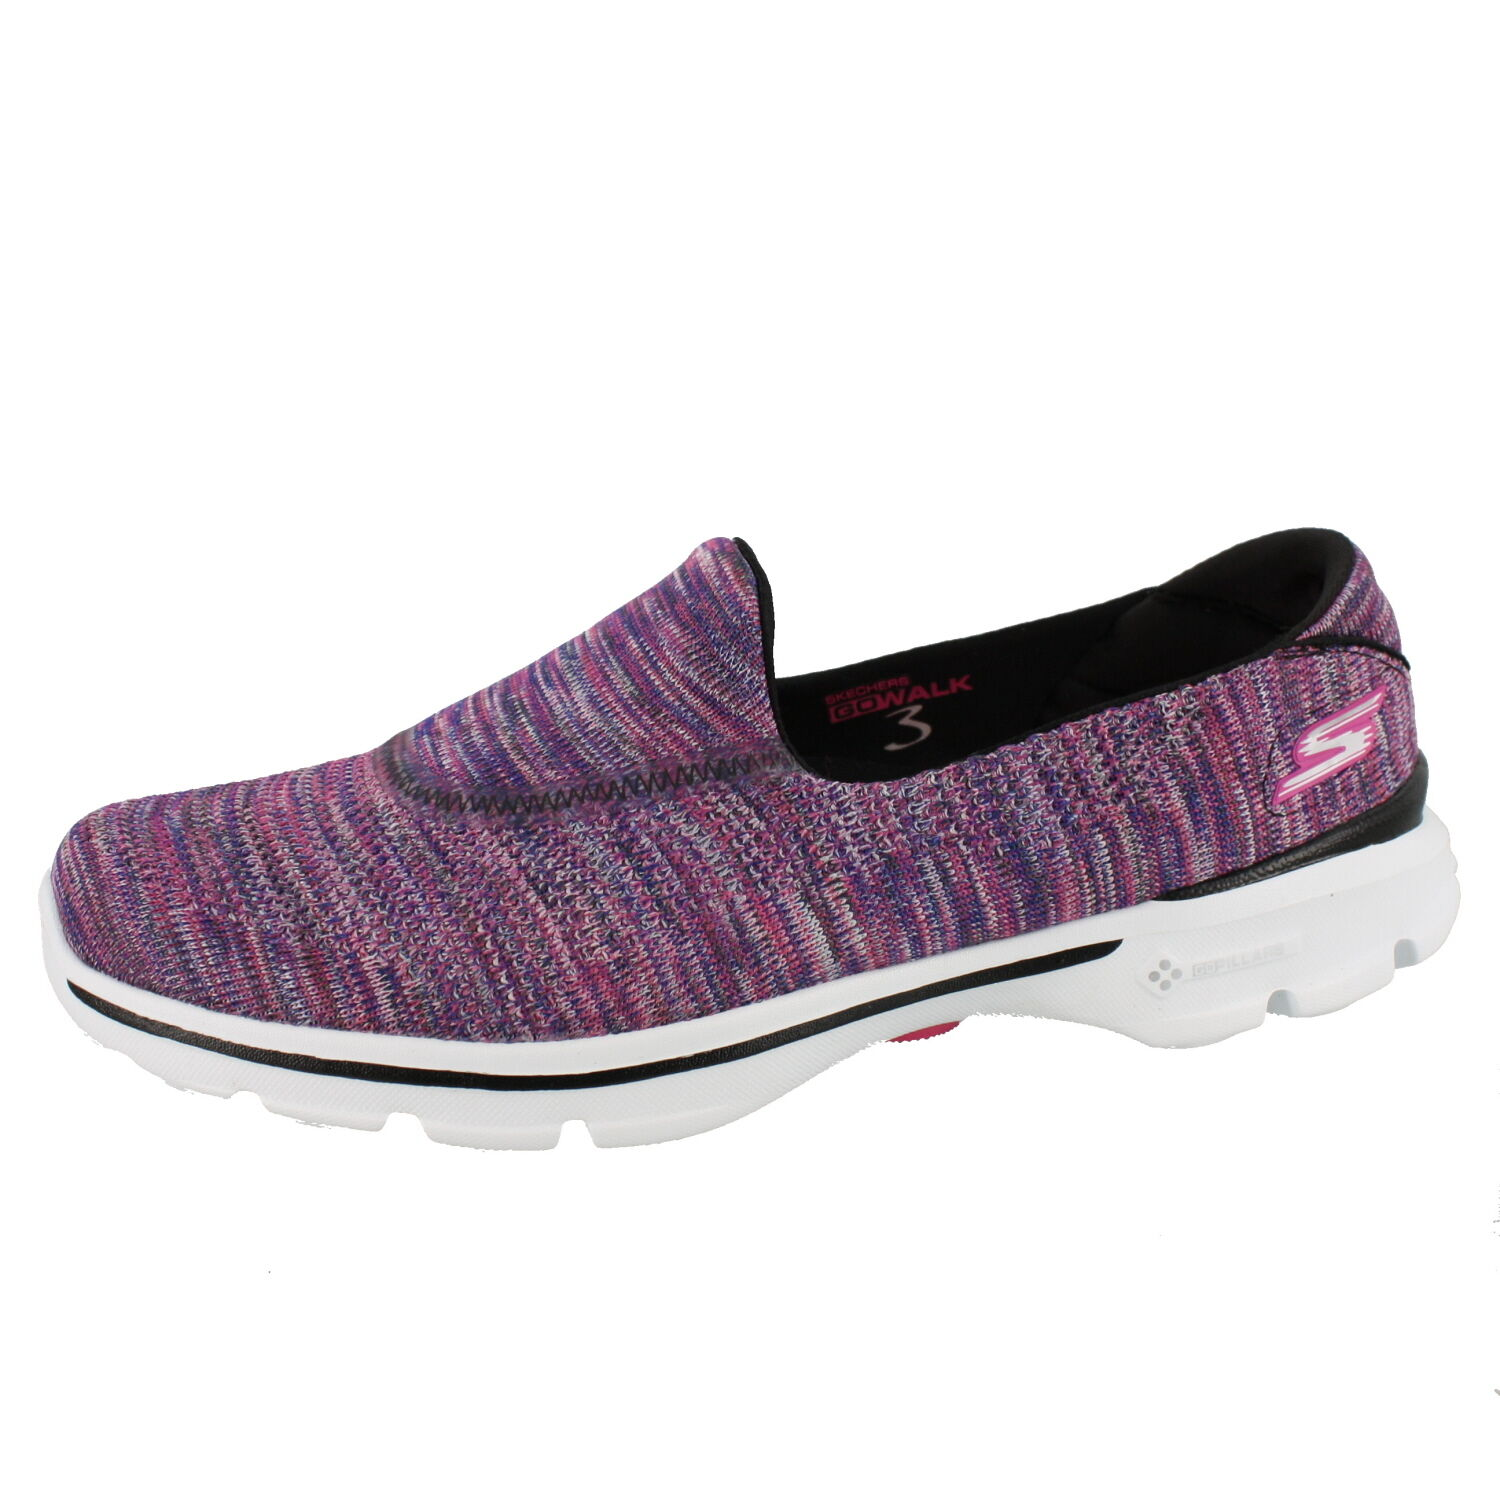 WOMENS SKECHERS GO WALK 3 FITKNIT EXTREME 13987 SLIP ON SHOES